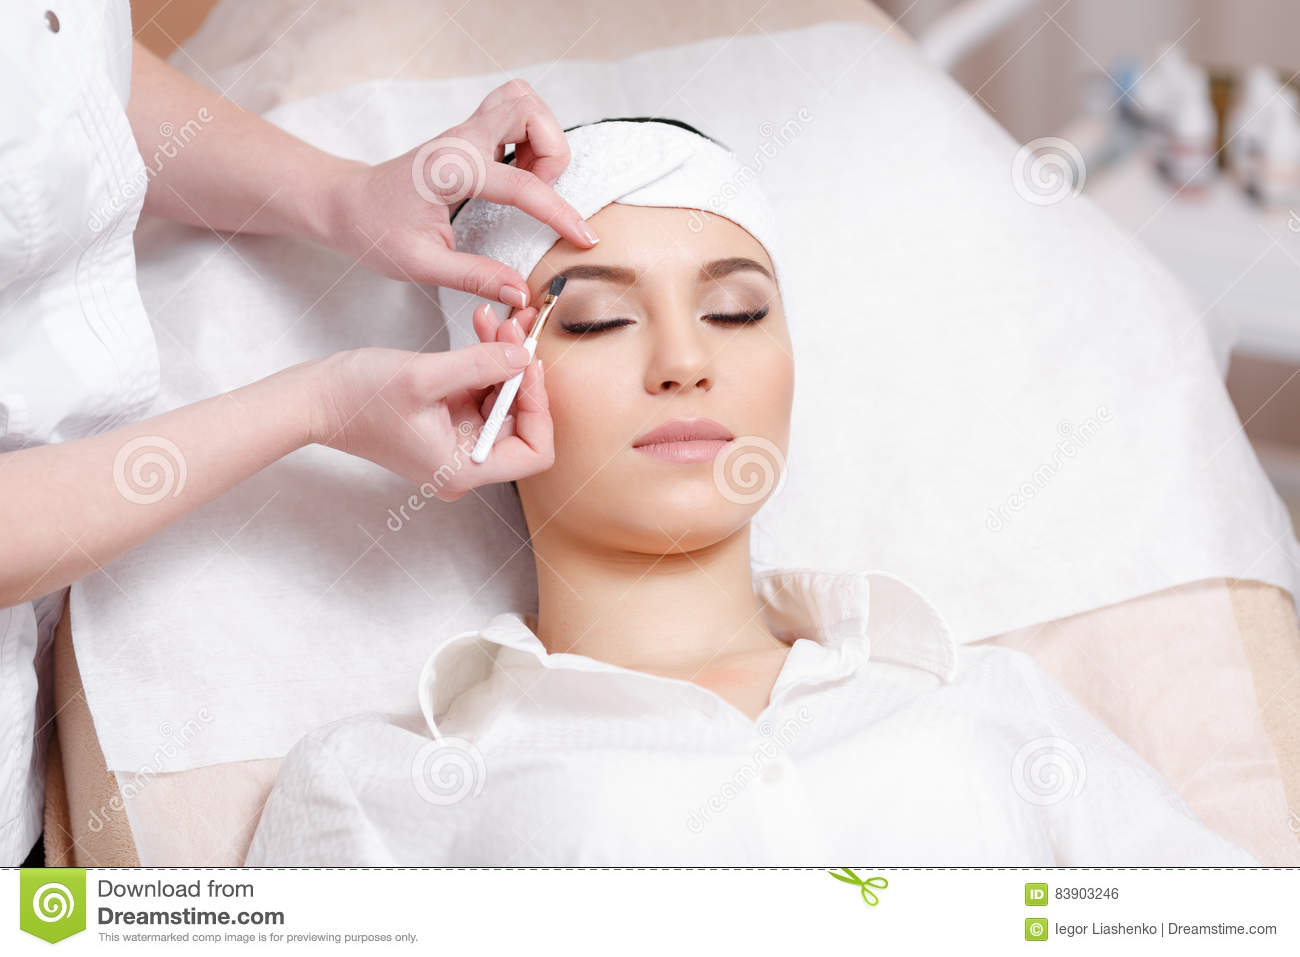 Permanent Make Up Wizard Makes Eyebrow Correction Procedure Stock